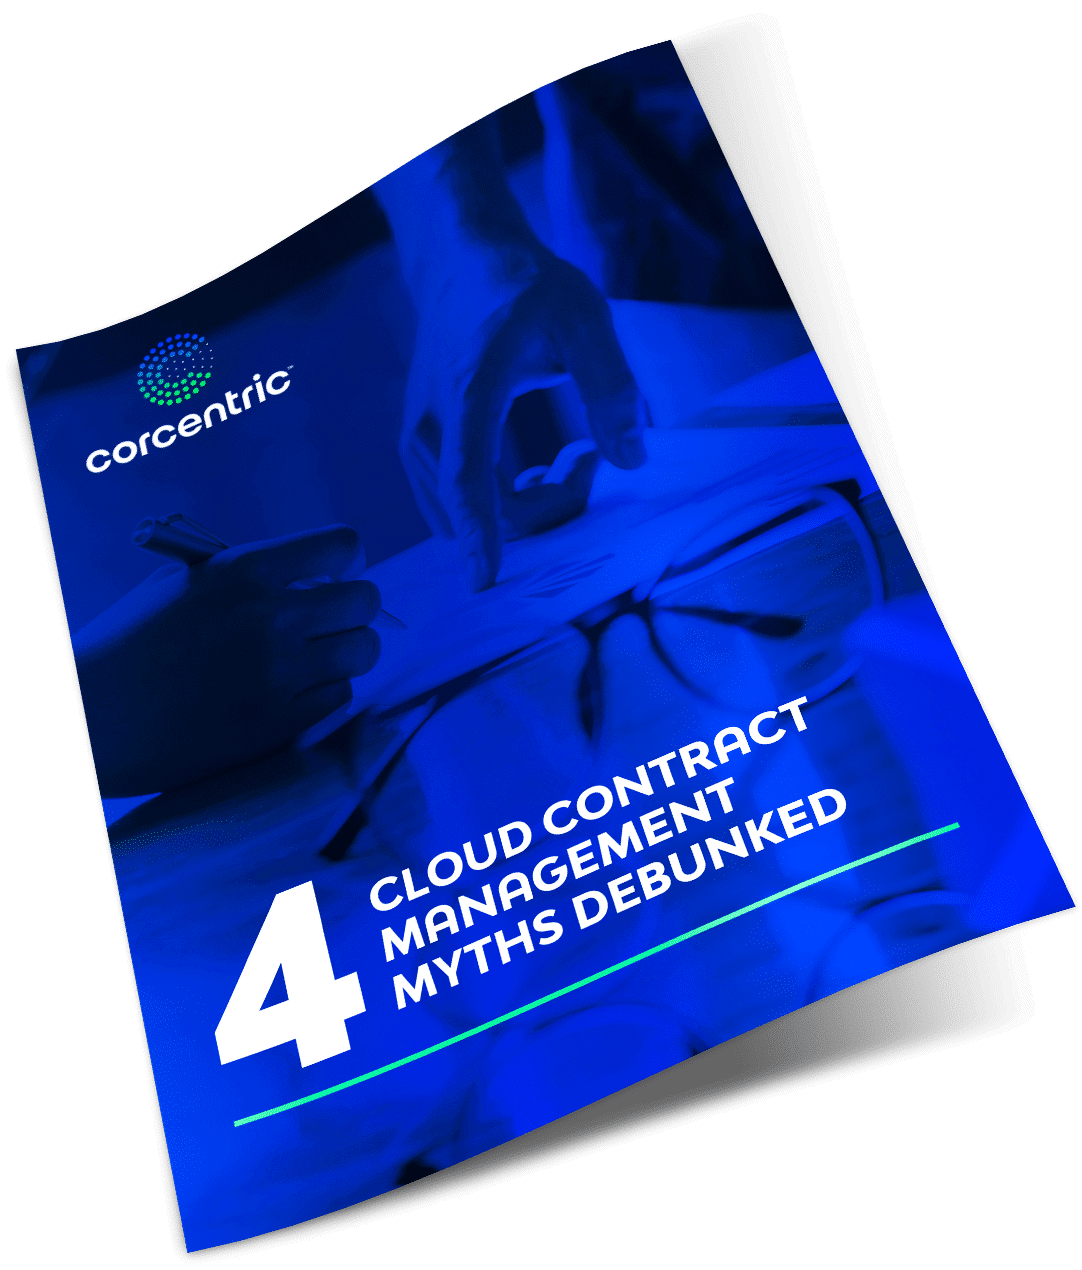 Debunking Common Cloud Contract Management Myths